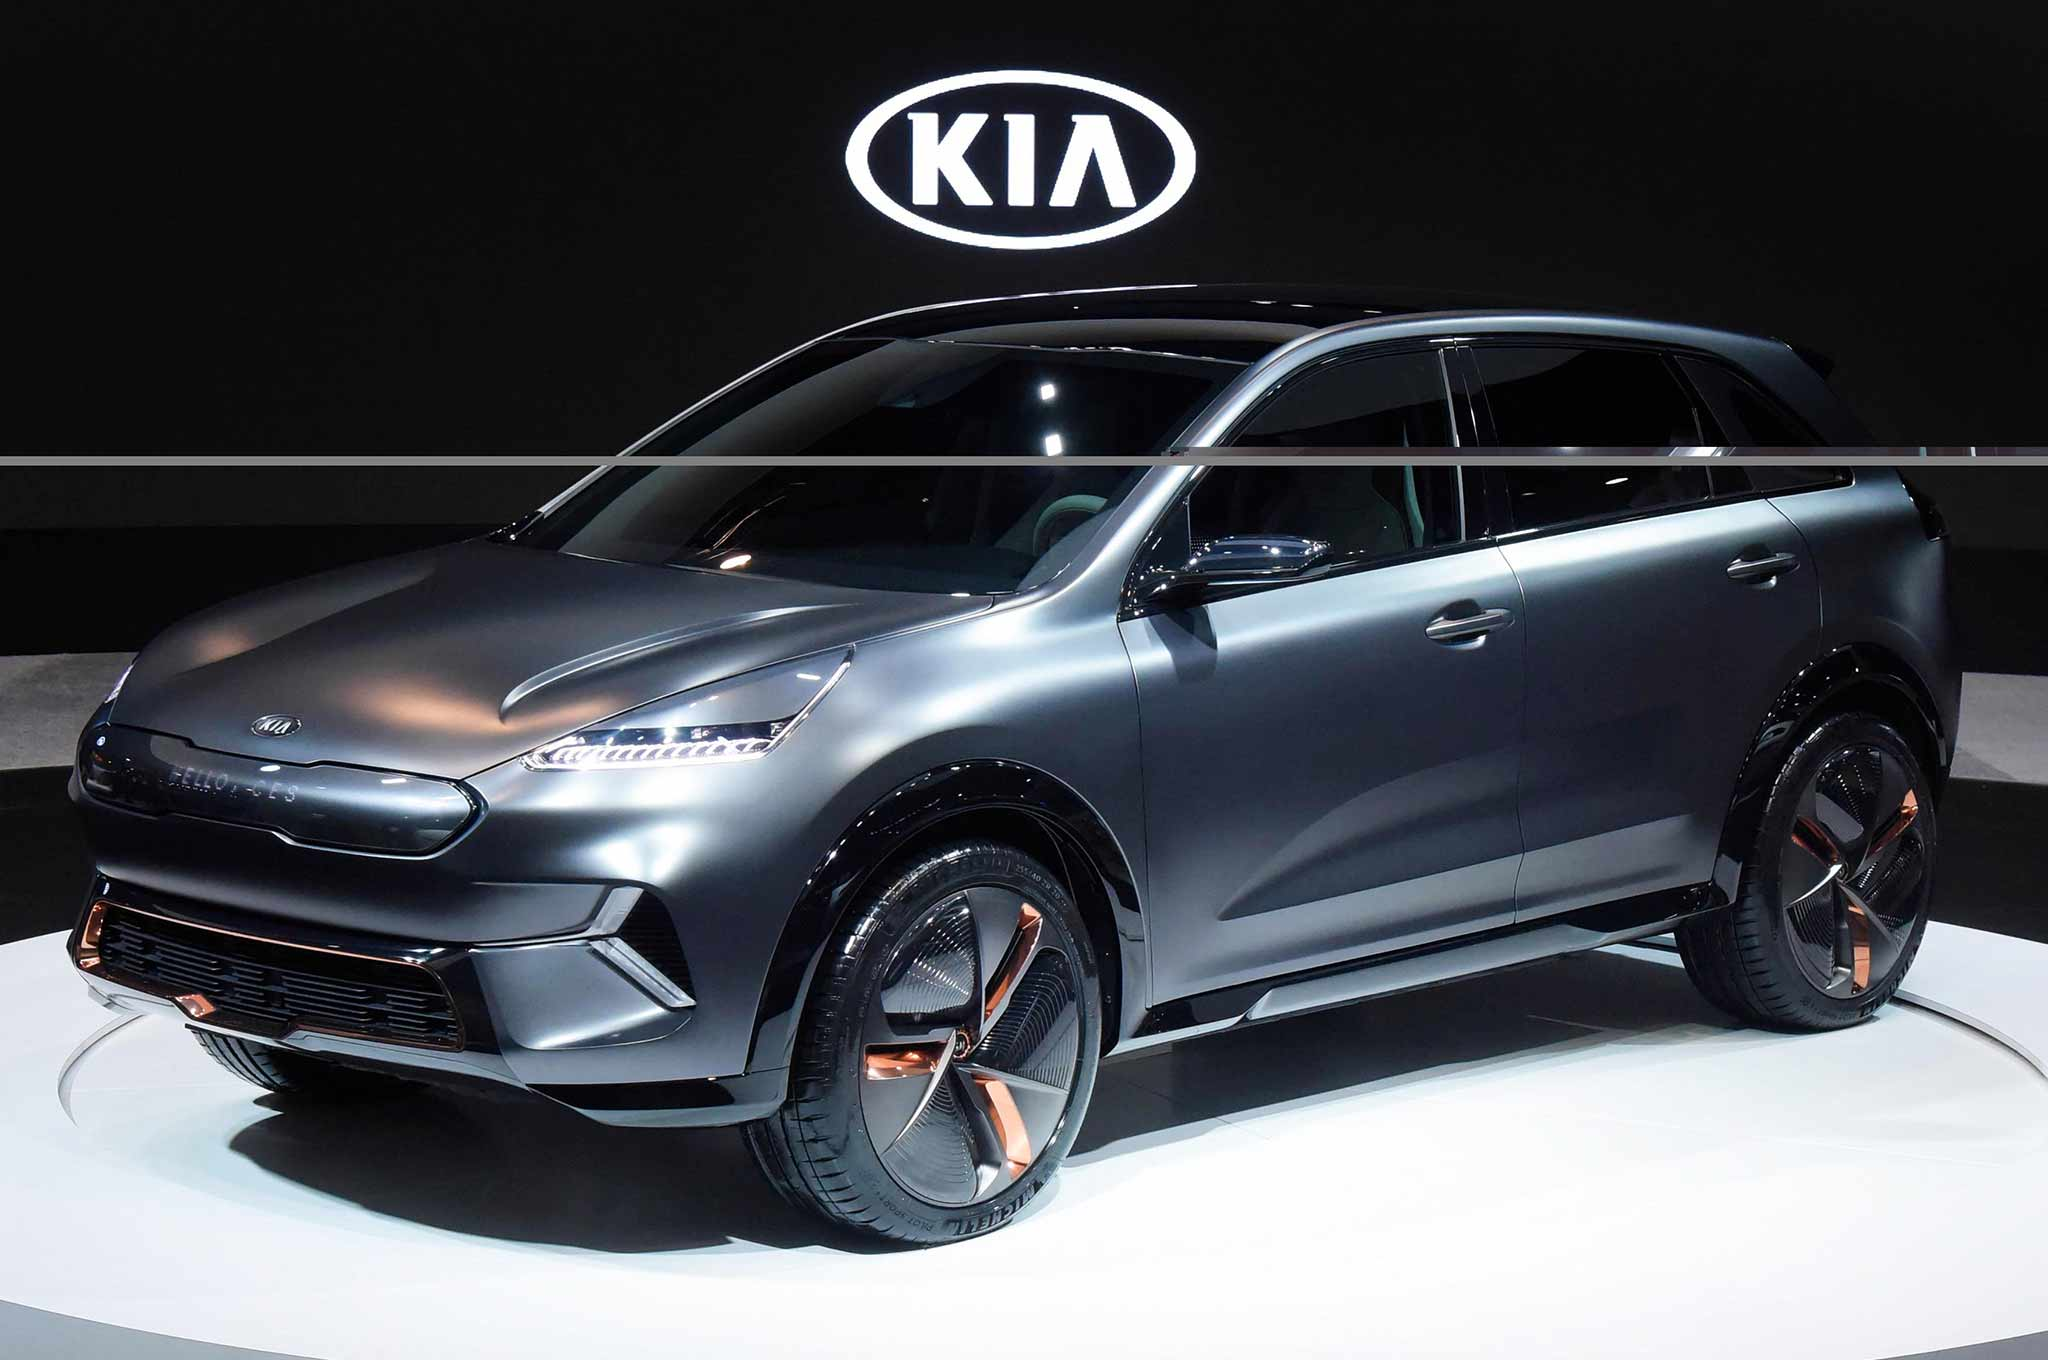 Kia Niro EV: Is It More Techy Than Motory?